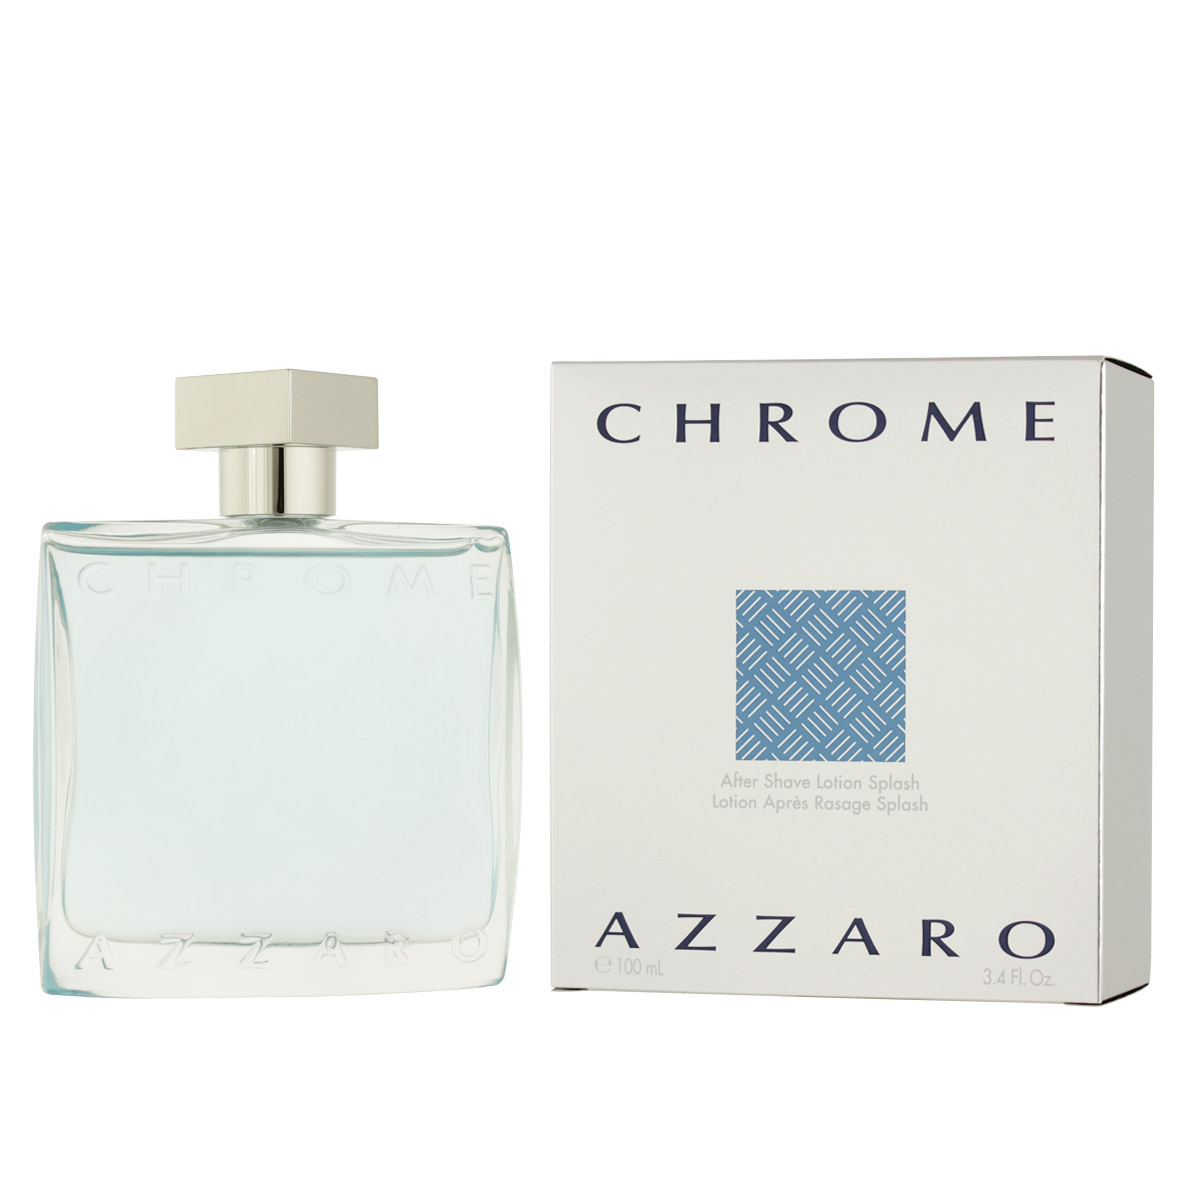 Azzaro Chrome pour Homme AS 100 ml M